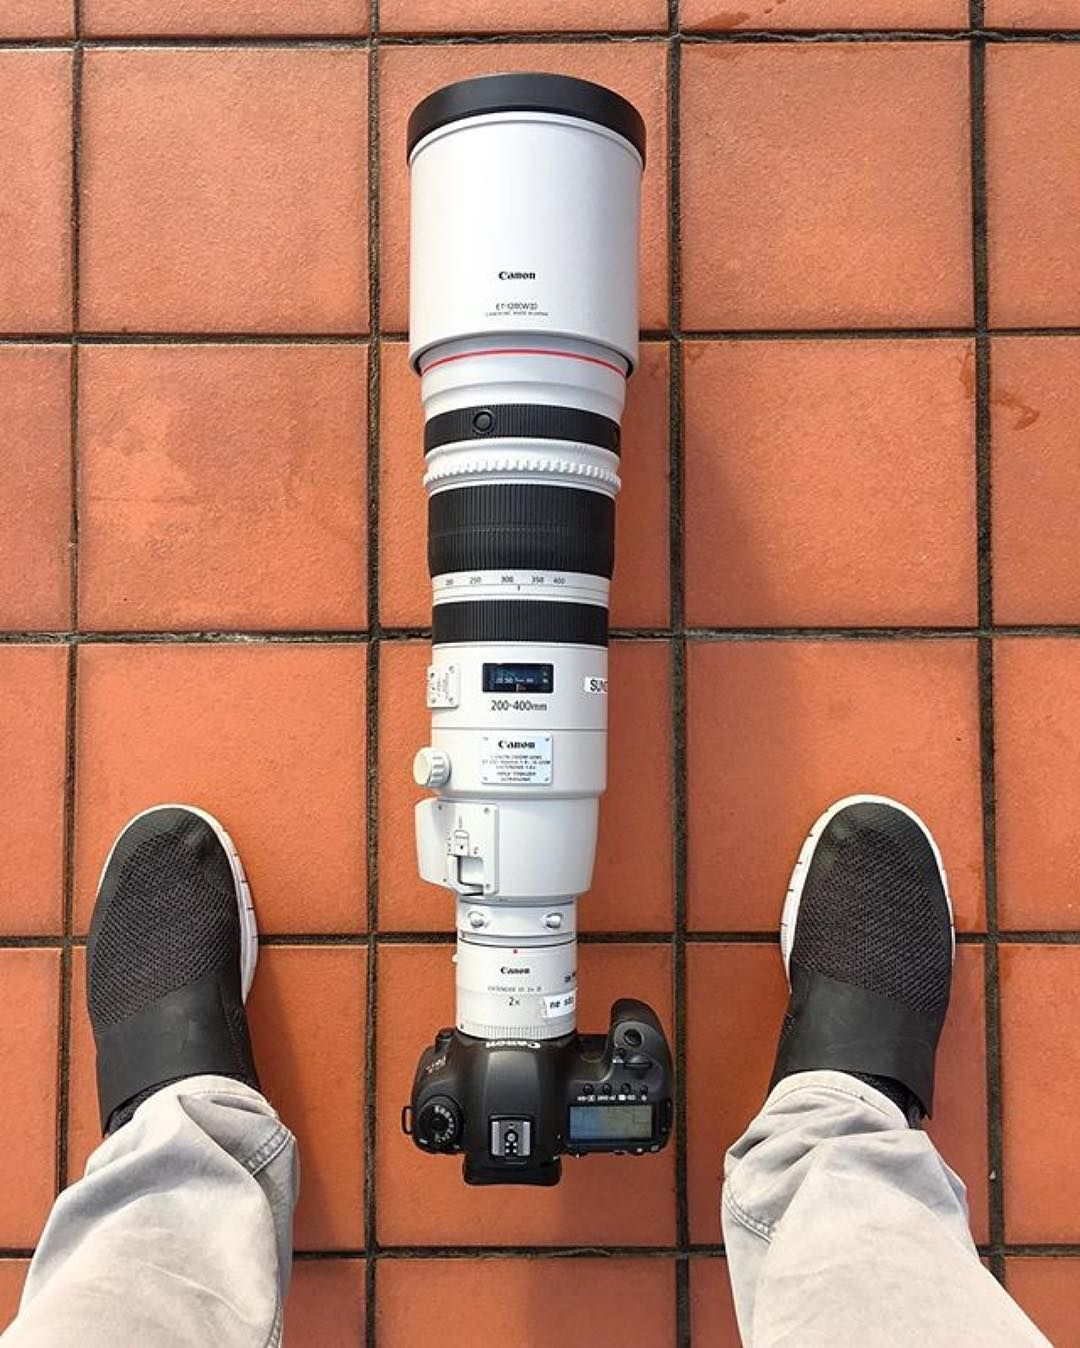 To Shoot The Supermoon You Need A Super Setup Canon 5dsr 200 400 F4 X2 Extender Photo By Matjoez Bts Tag A Friend Who Could Use This Lens Canon Gear Cam